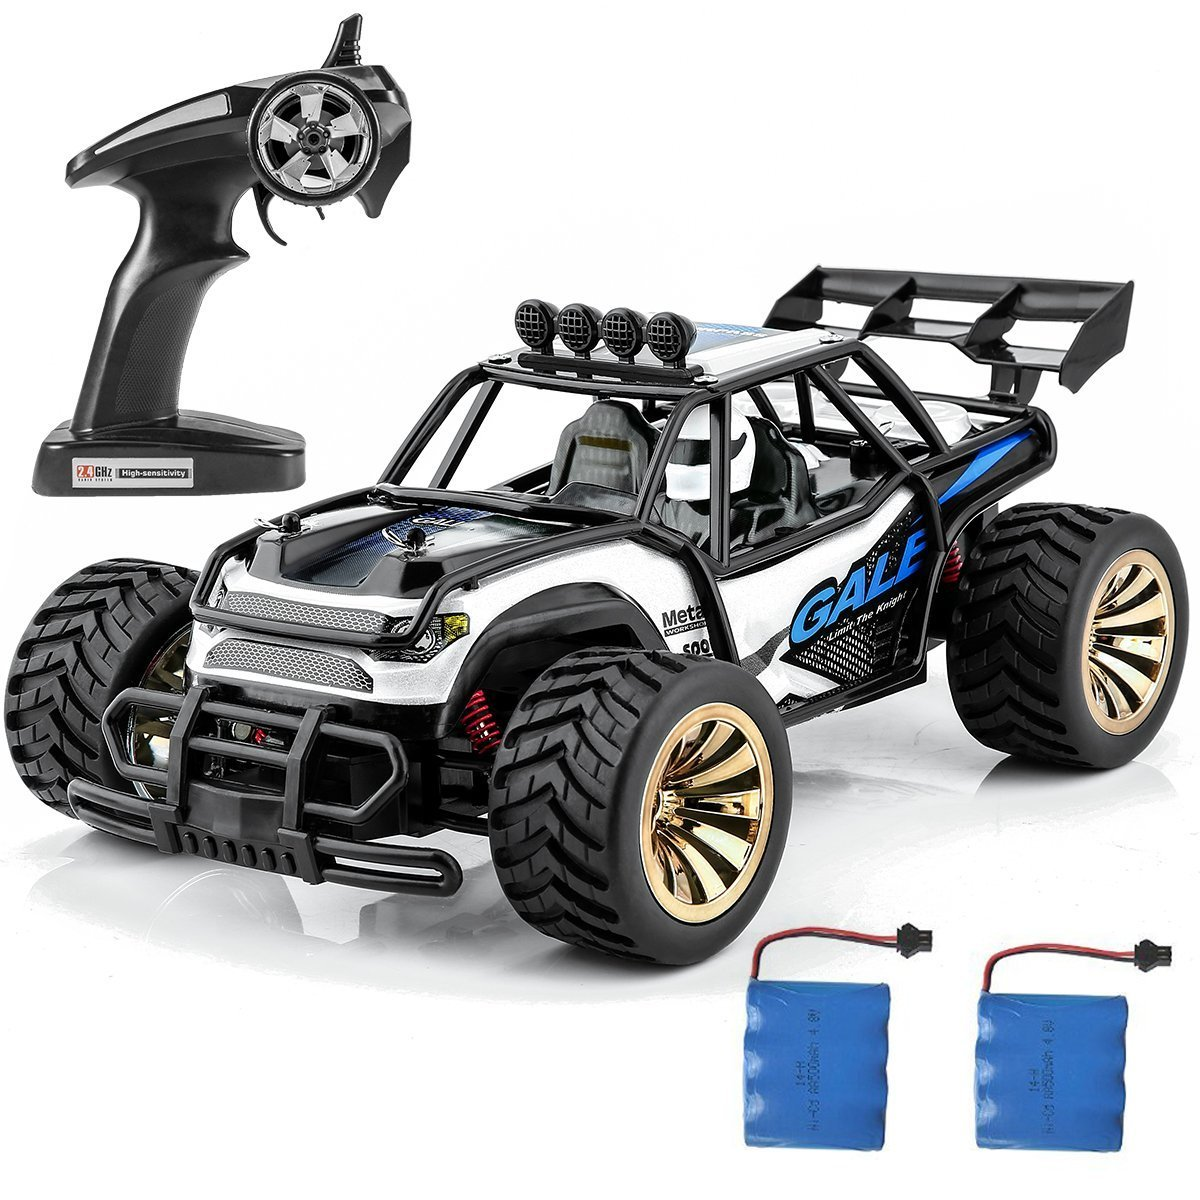 Distianert 1:16 Scale Electric RC Car Off Road Vehicle 2.4GHz Radio Remote Control Car 2W High Speed Racing Monster Truck by Distianert (Image #7)